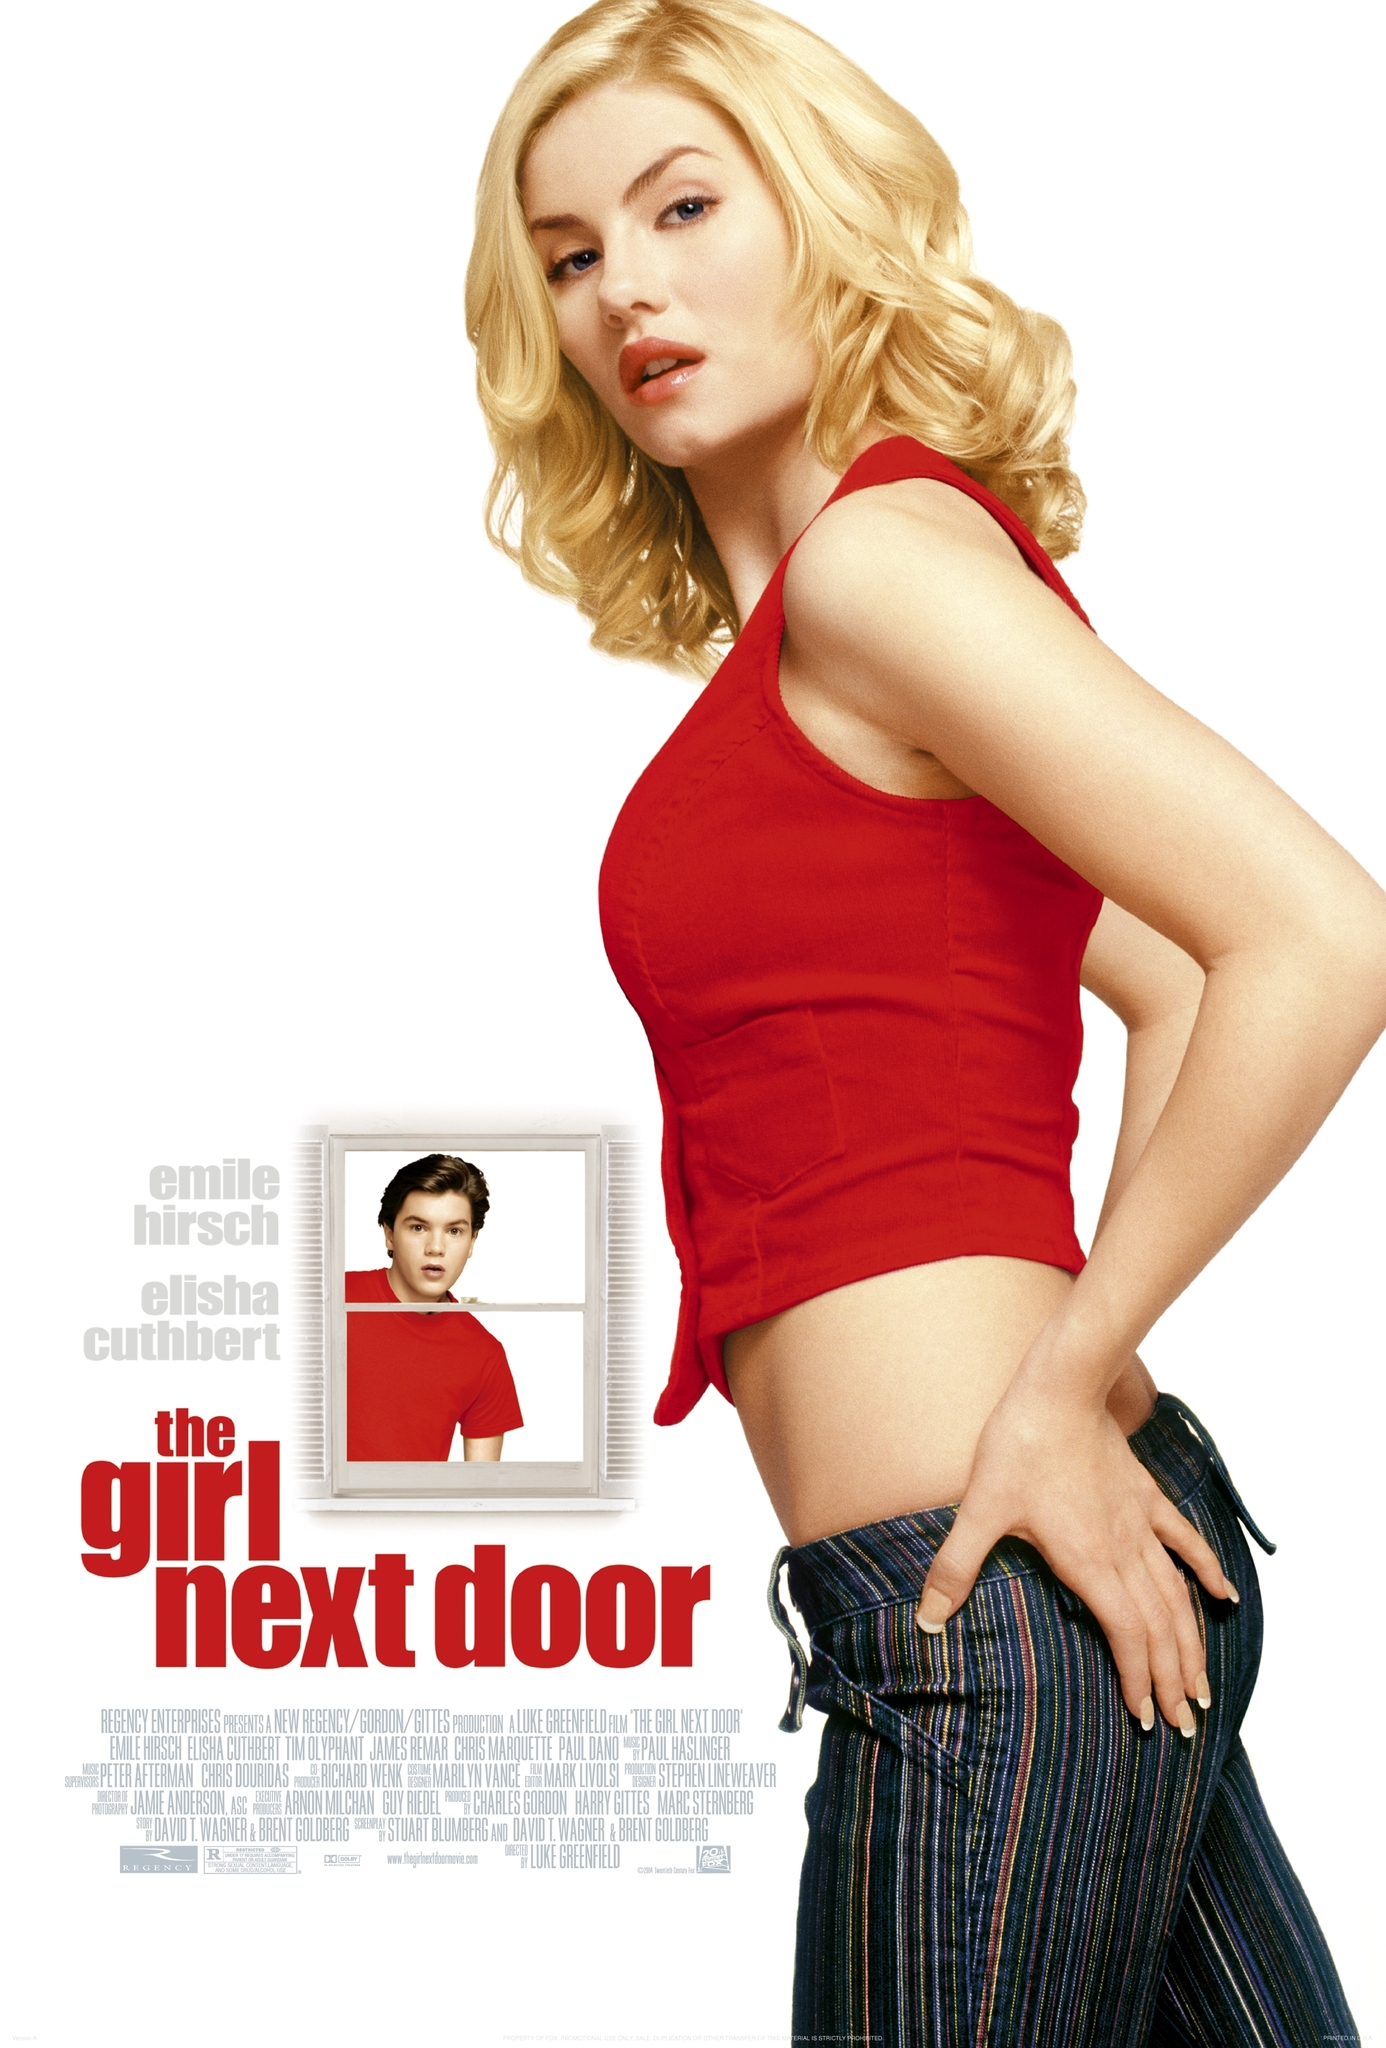 The Girl Next Door (2004) - IMDb